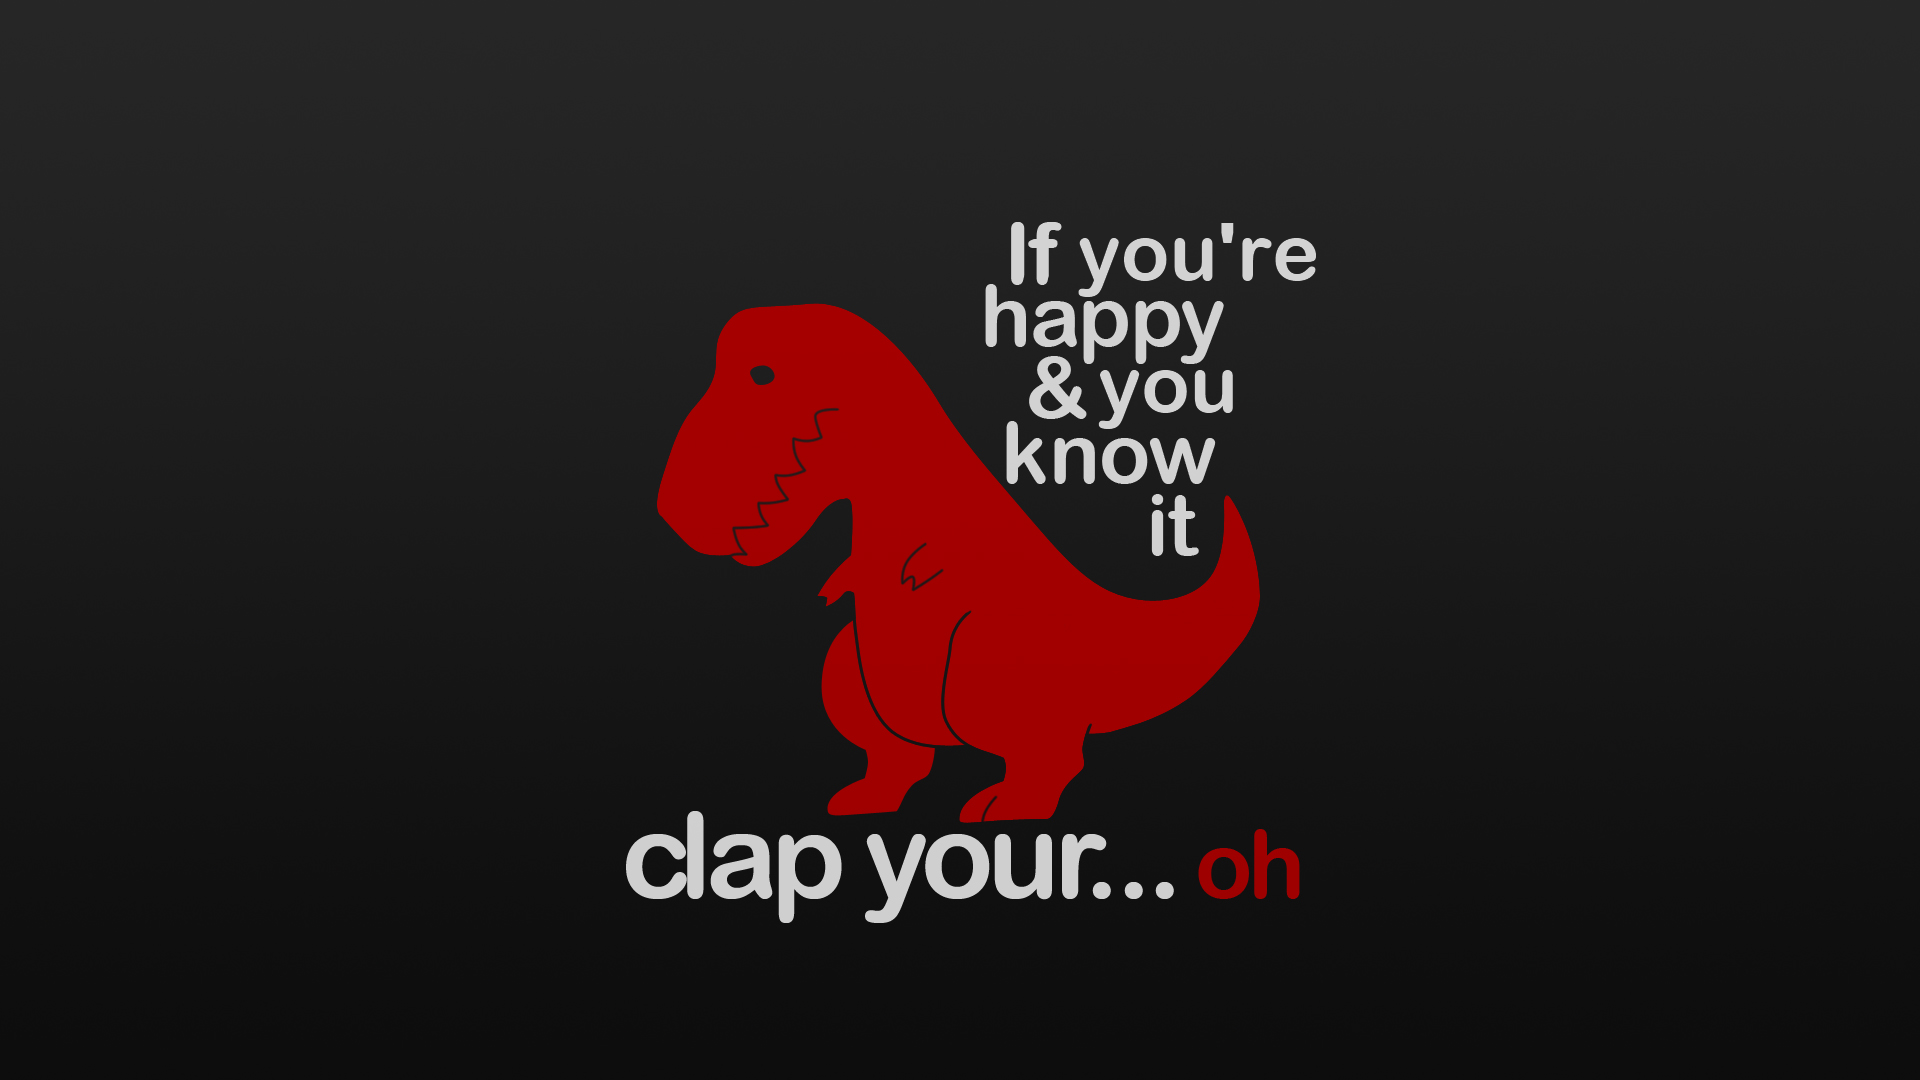 Wallpaper Phone Funny Quotes The Galleries Of Hd Wallpaper